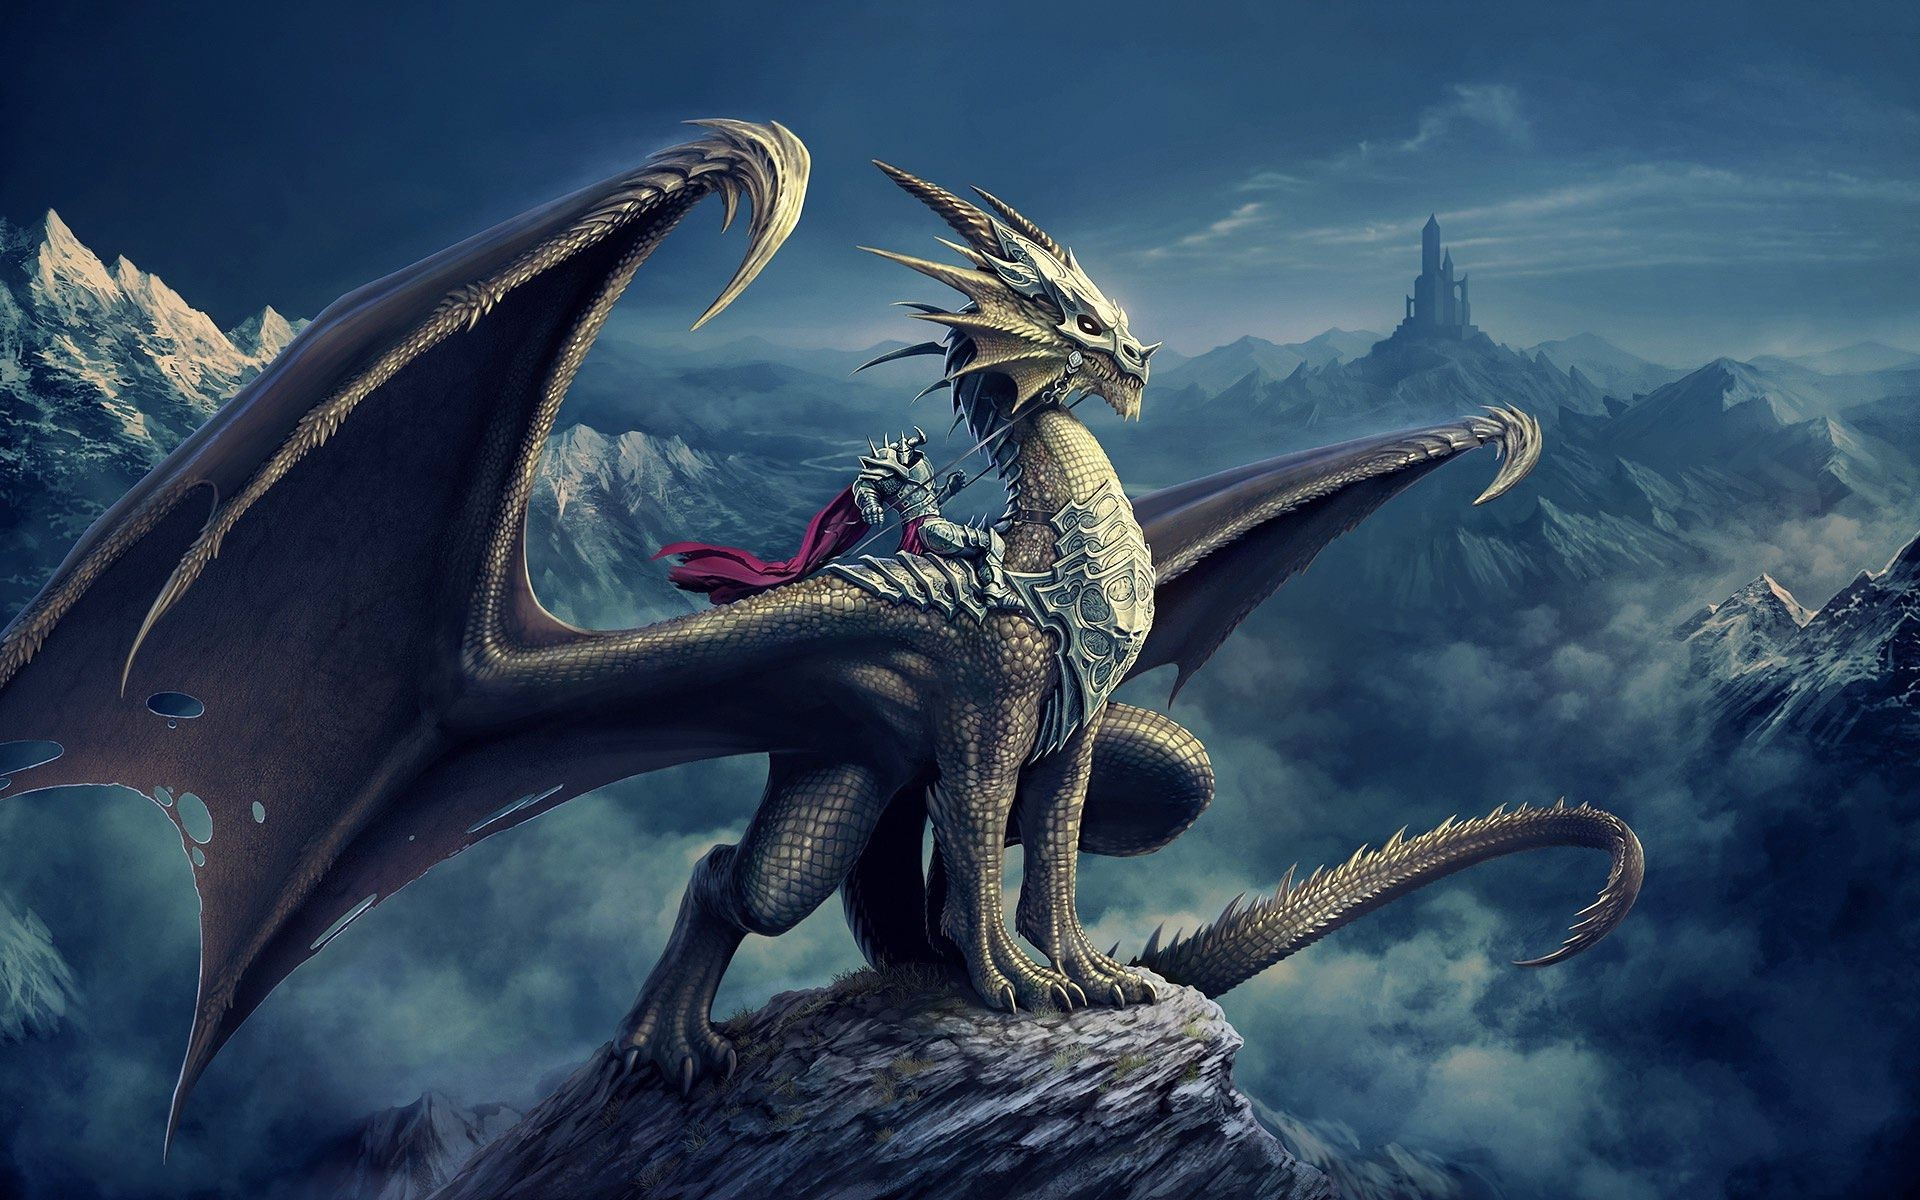 dragon wallpaper ·① download free cool high resolution backgrounds